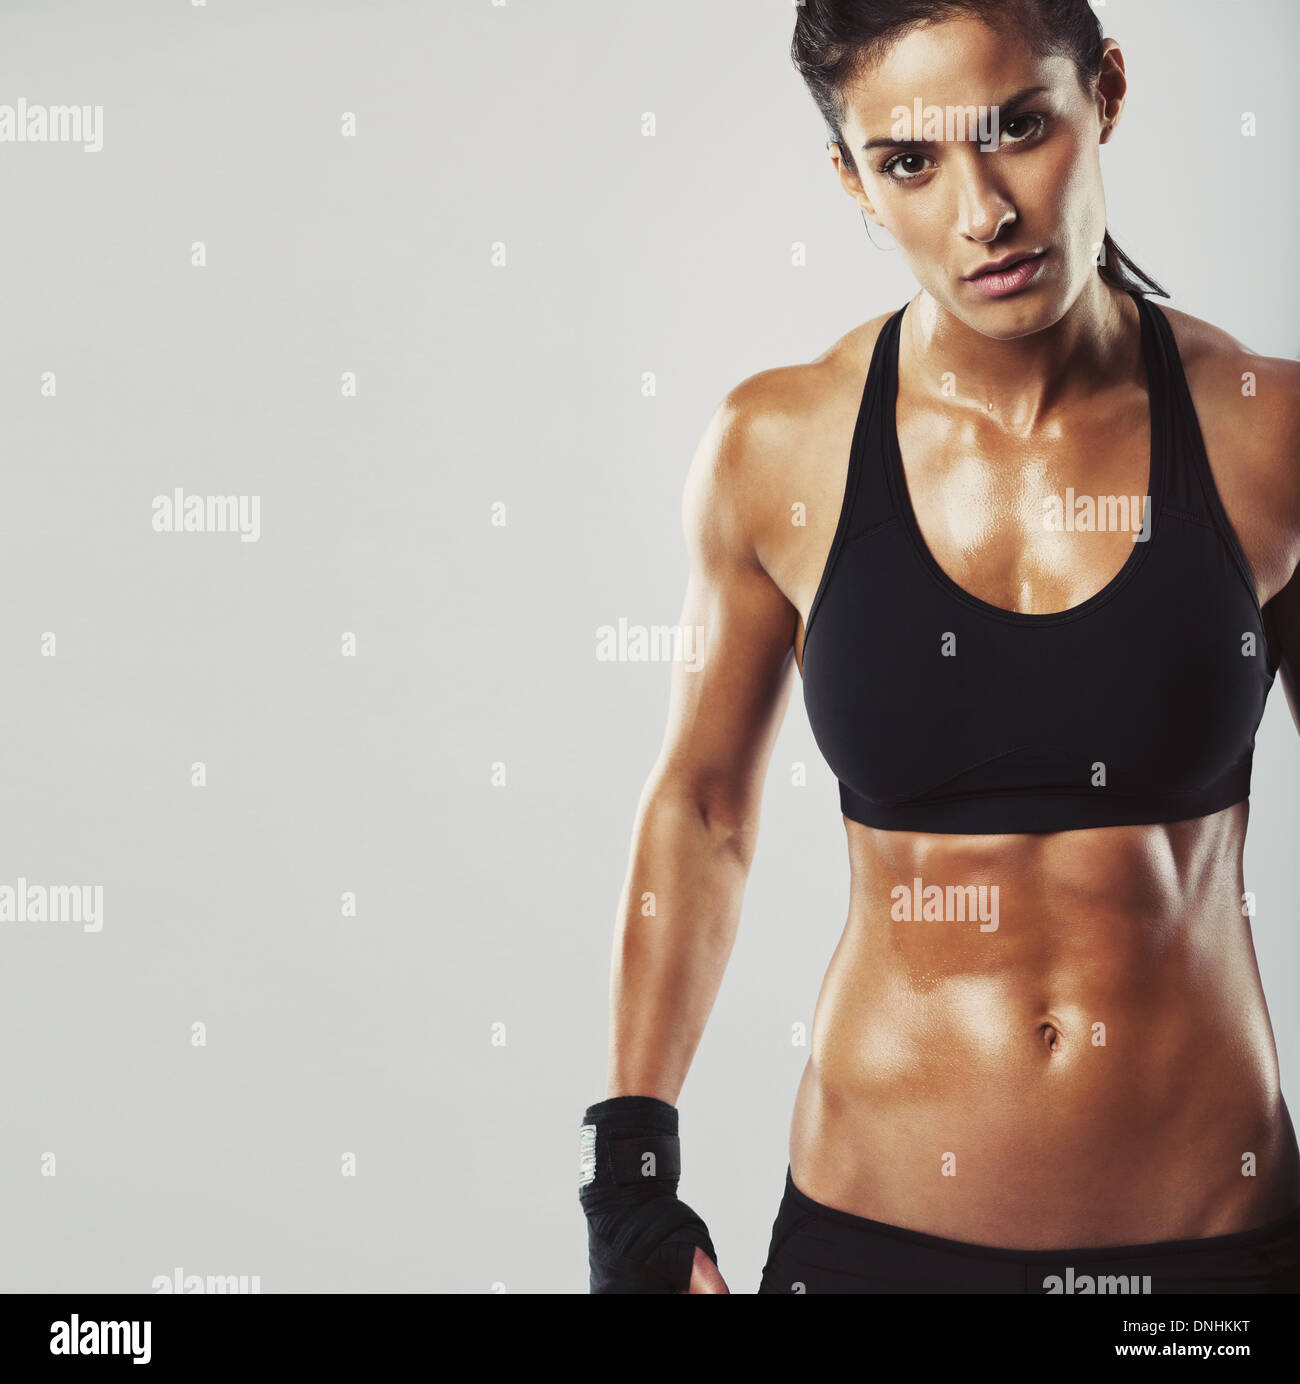 e77fe42179 Picture of a fitness model on grey background. Young woman bodybuilder with  muscular body looking